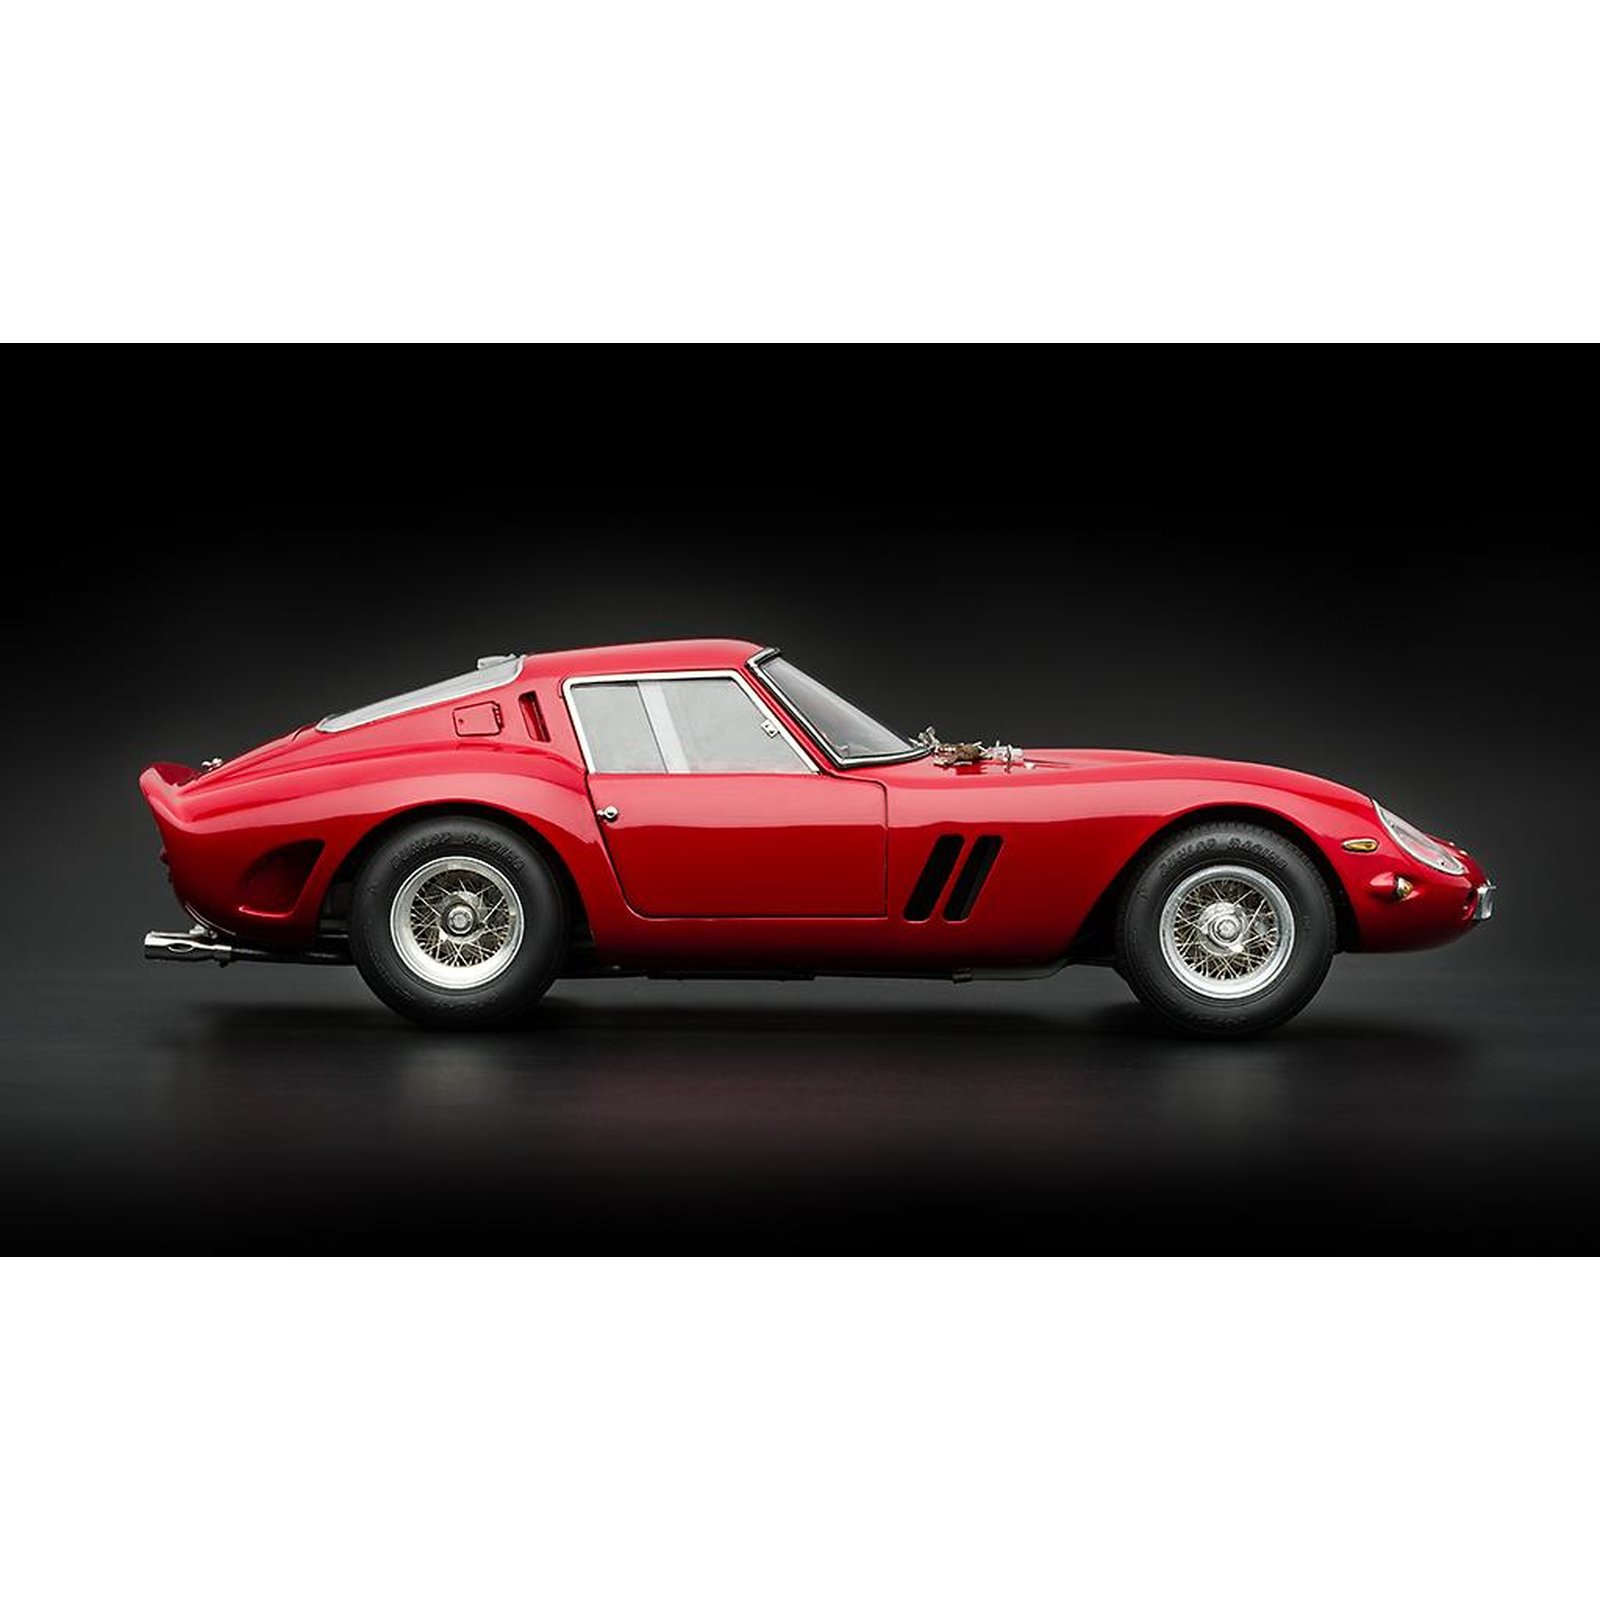 cmc m 154 ferrari 250 gto 1962 rot massstab 1 18. Black Bedroom Furniture Sets. Home Design Ideas